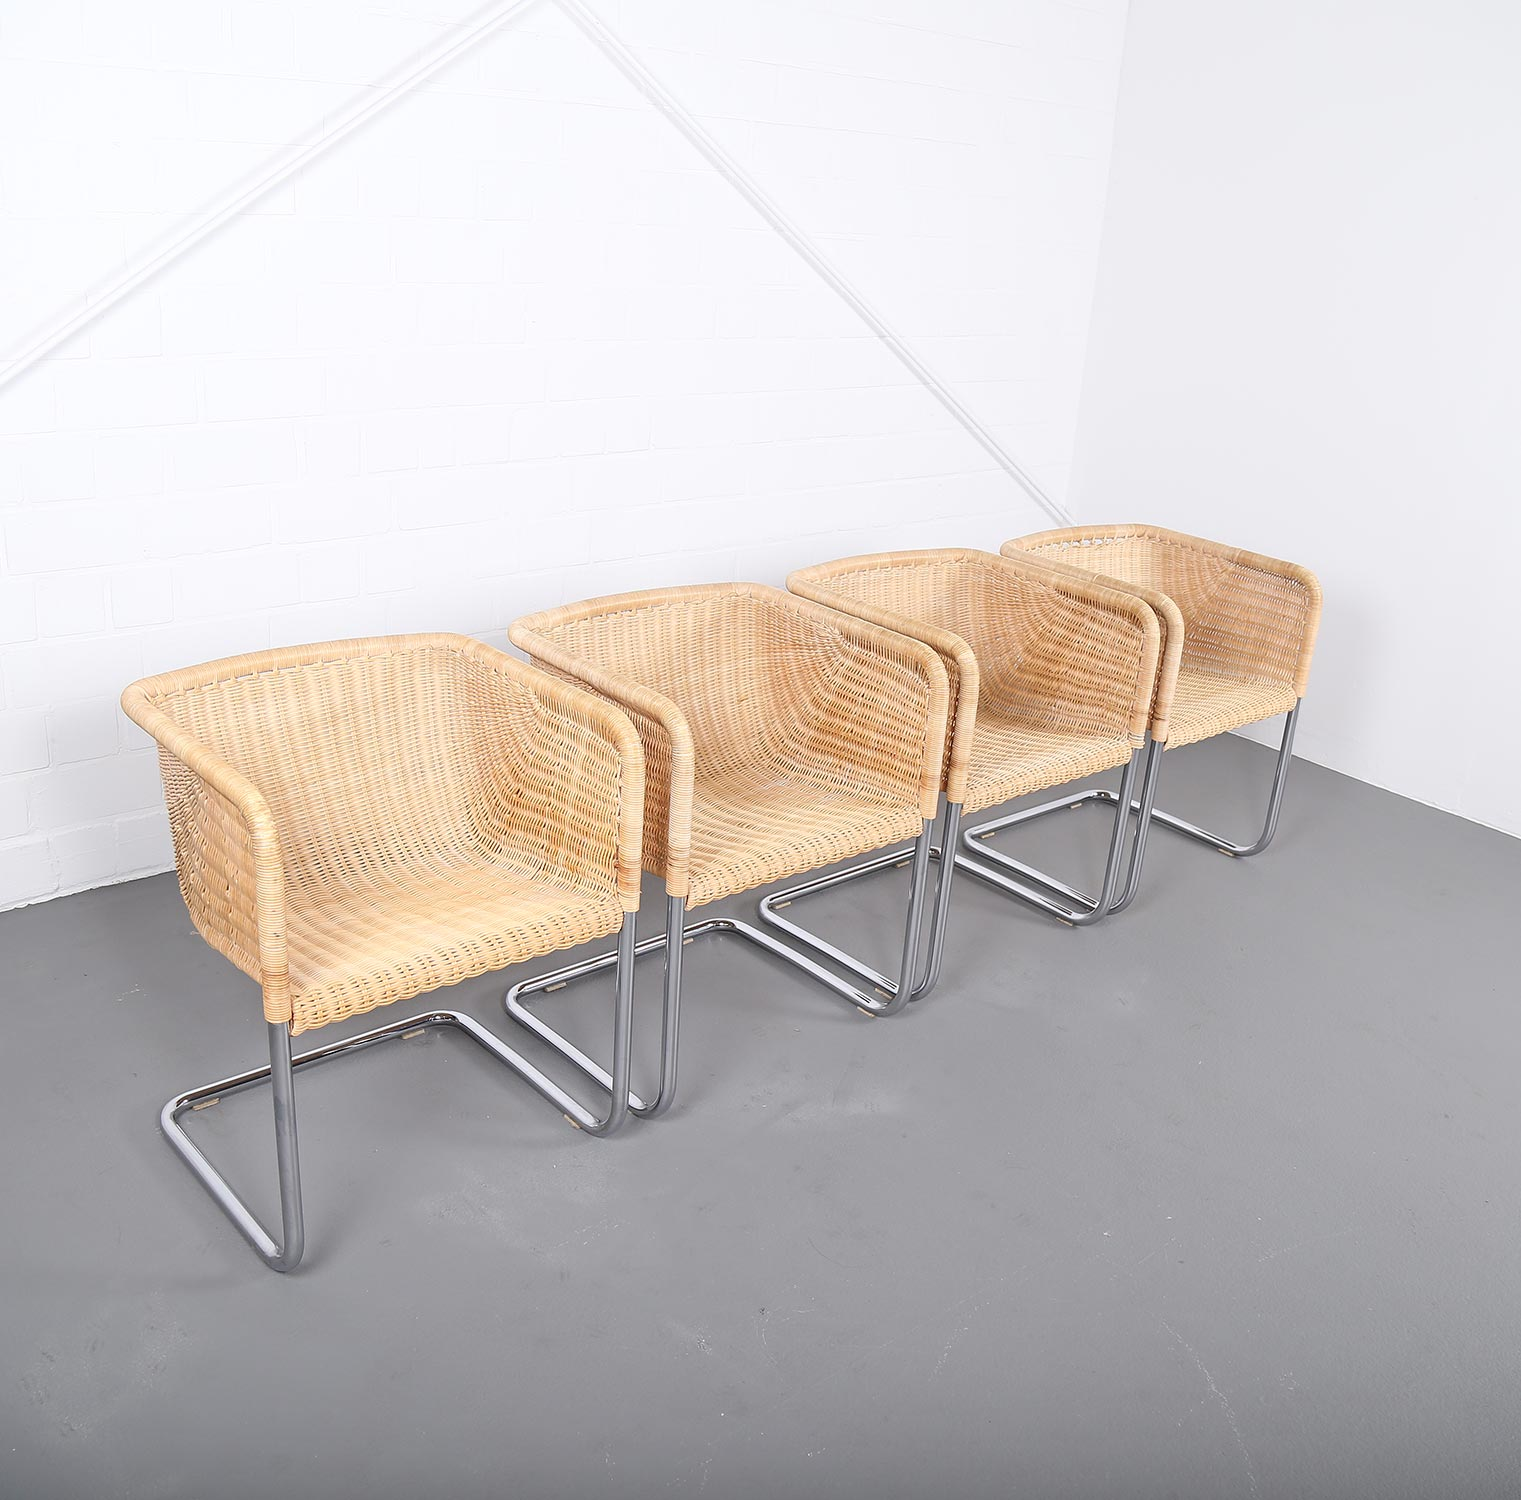 Tecta d43 chair stuhl wicker kastholm fabricius mart stam for Stuhl design bauhaus